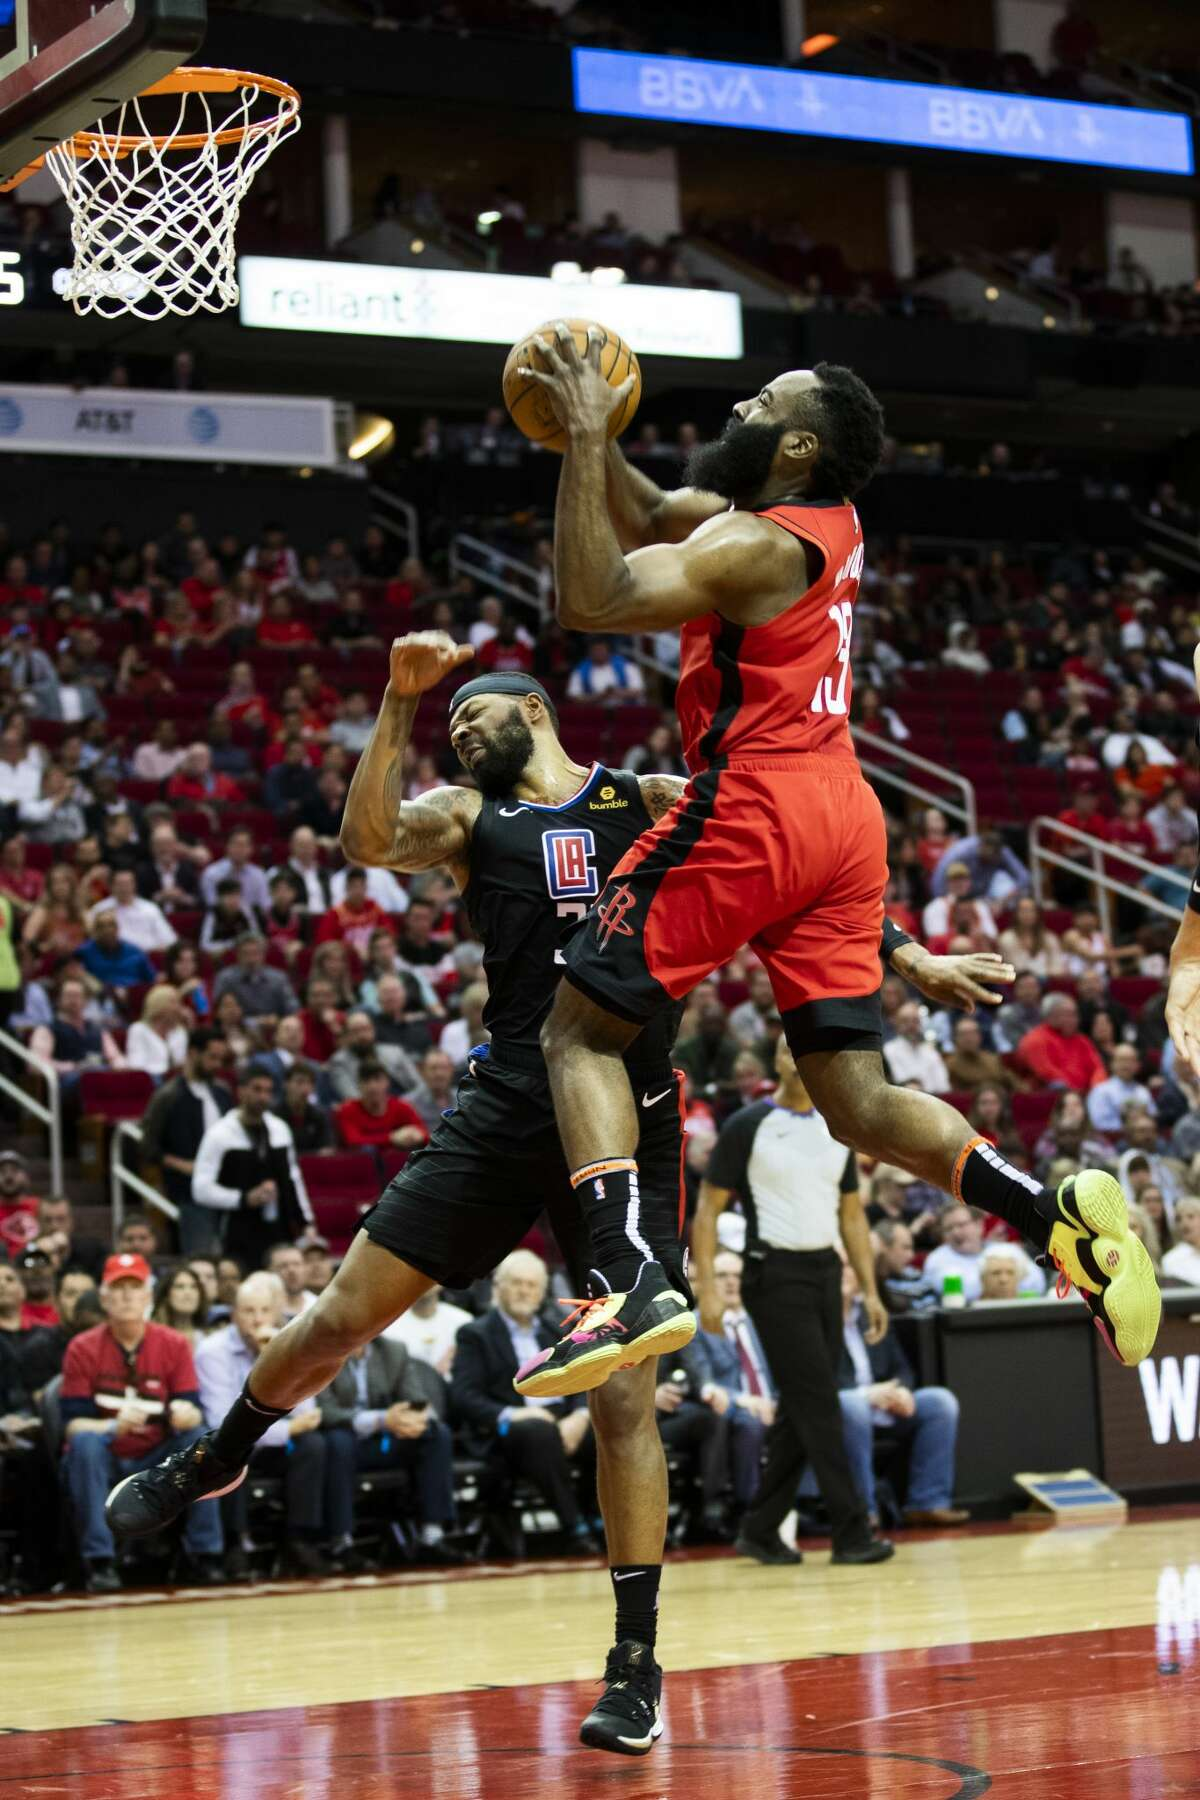 Houston Rockets guard James Harden (13) drives to the basket against LA Clippers forward Marcus Morris Sr. (31) at the Toyota Center on Thursday, March 5, 2020, in Houston.